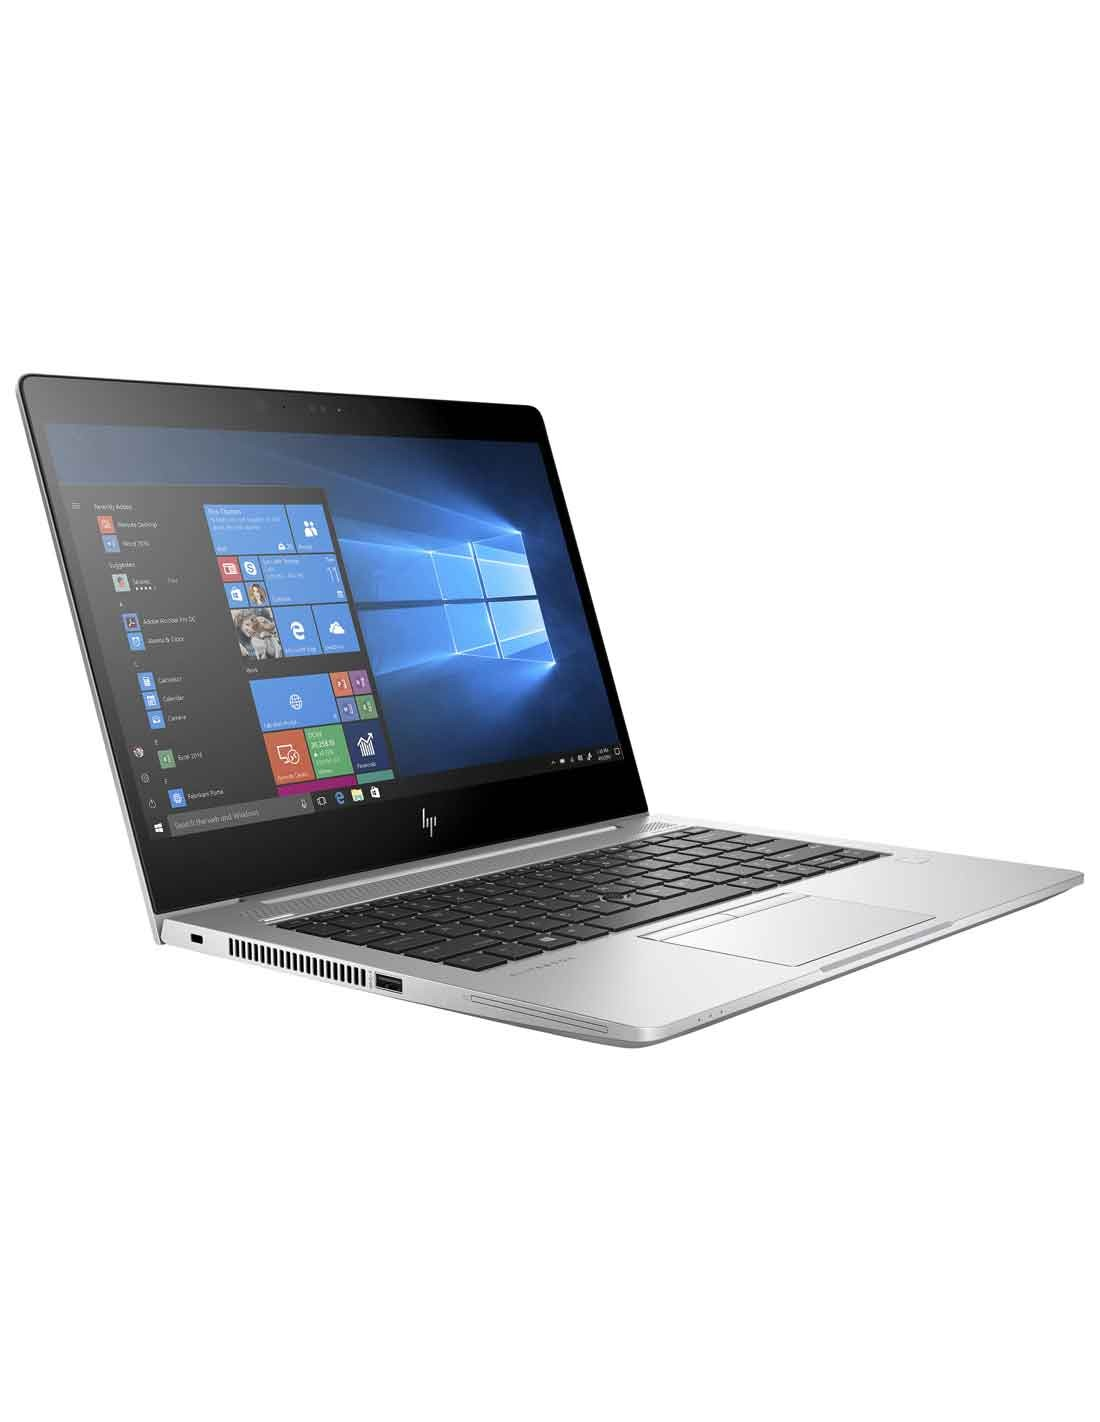 HP EliteBook 840 G5 Notebook 16GB images and photos